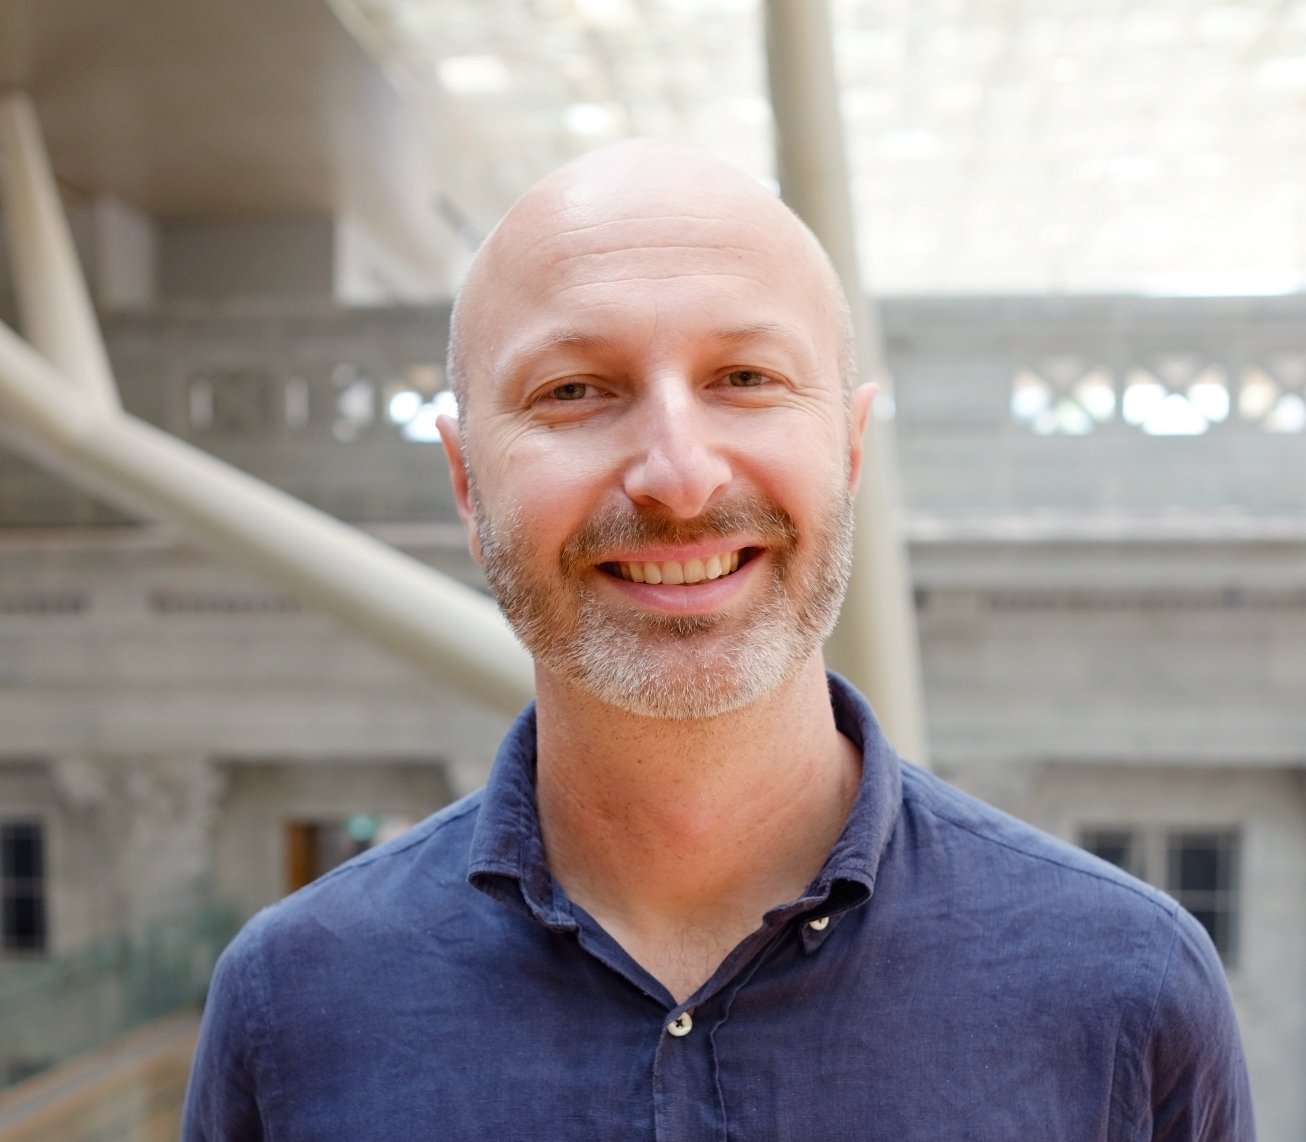 Russell Storer, senior curator at the National Gallery Singapore